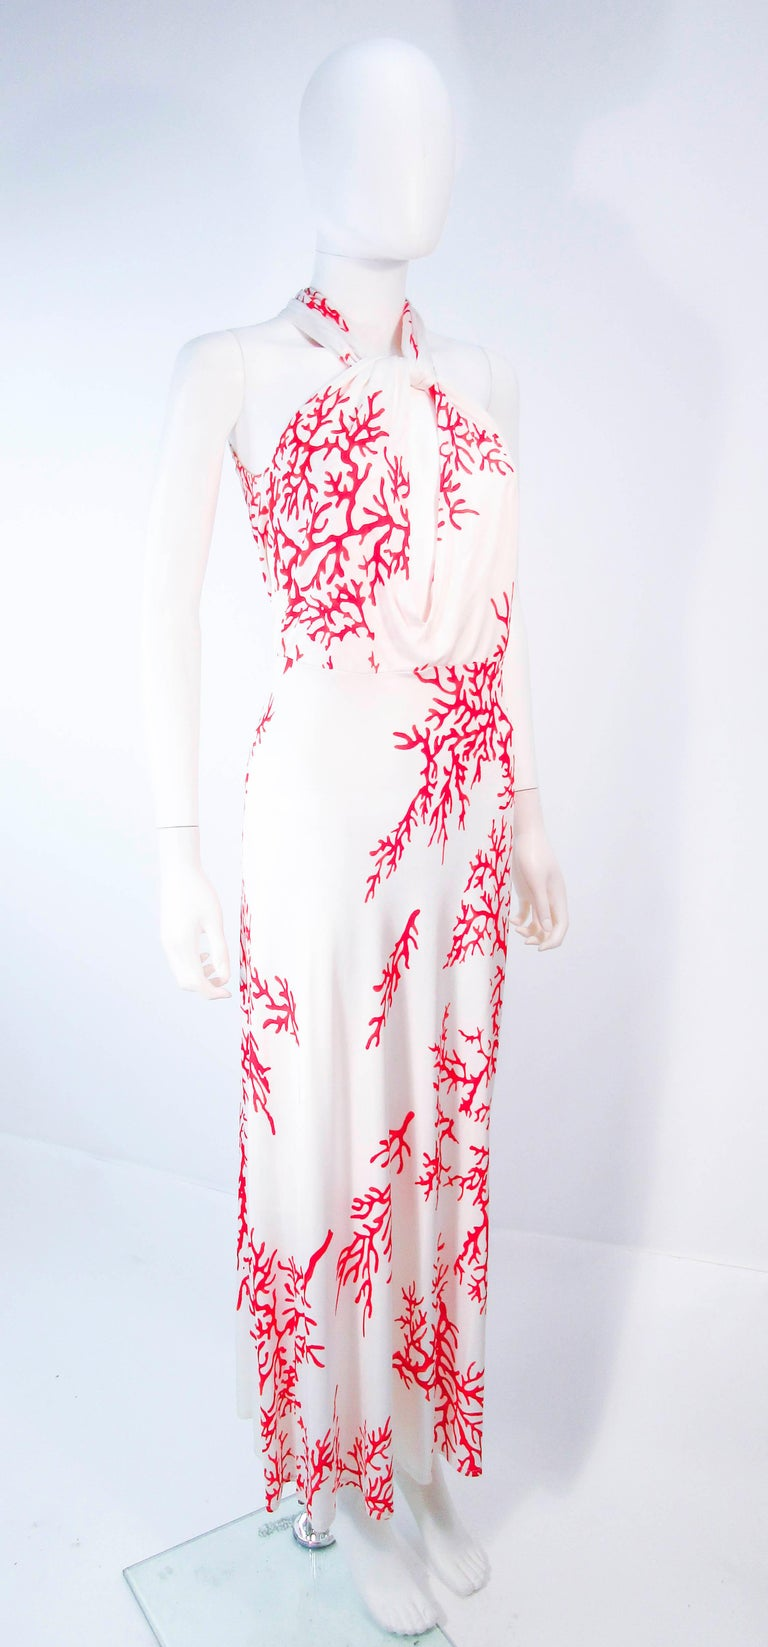 Women's VALENTINO White with Red Coral Pattern Criss Cross Jersey Halter Dress Size 42 For Sale